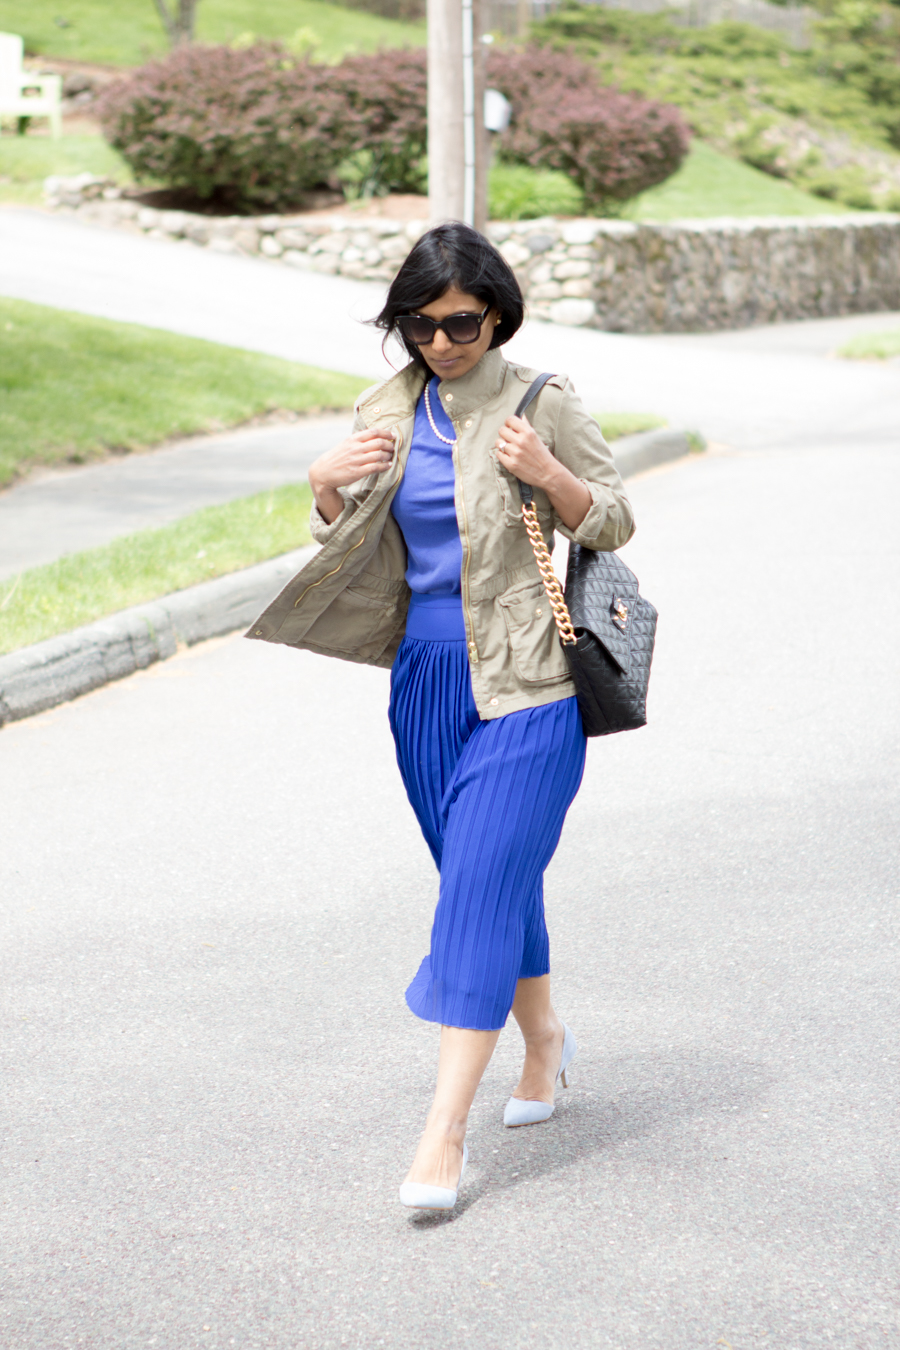 spring style, business casual, work outfit, ladylike, elegant, midiskirt, pleated skirt, cobalt blue, royal blue, blue pumps, sole society, j.crew style, utility jacket, cargo jacket